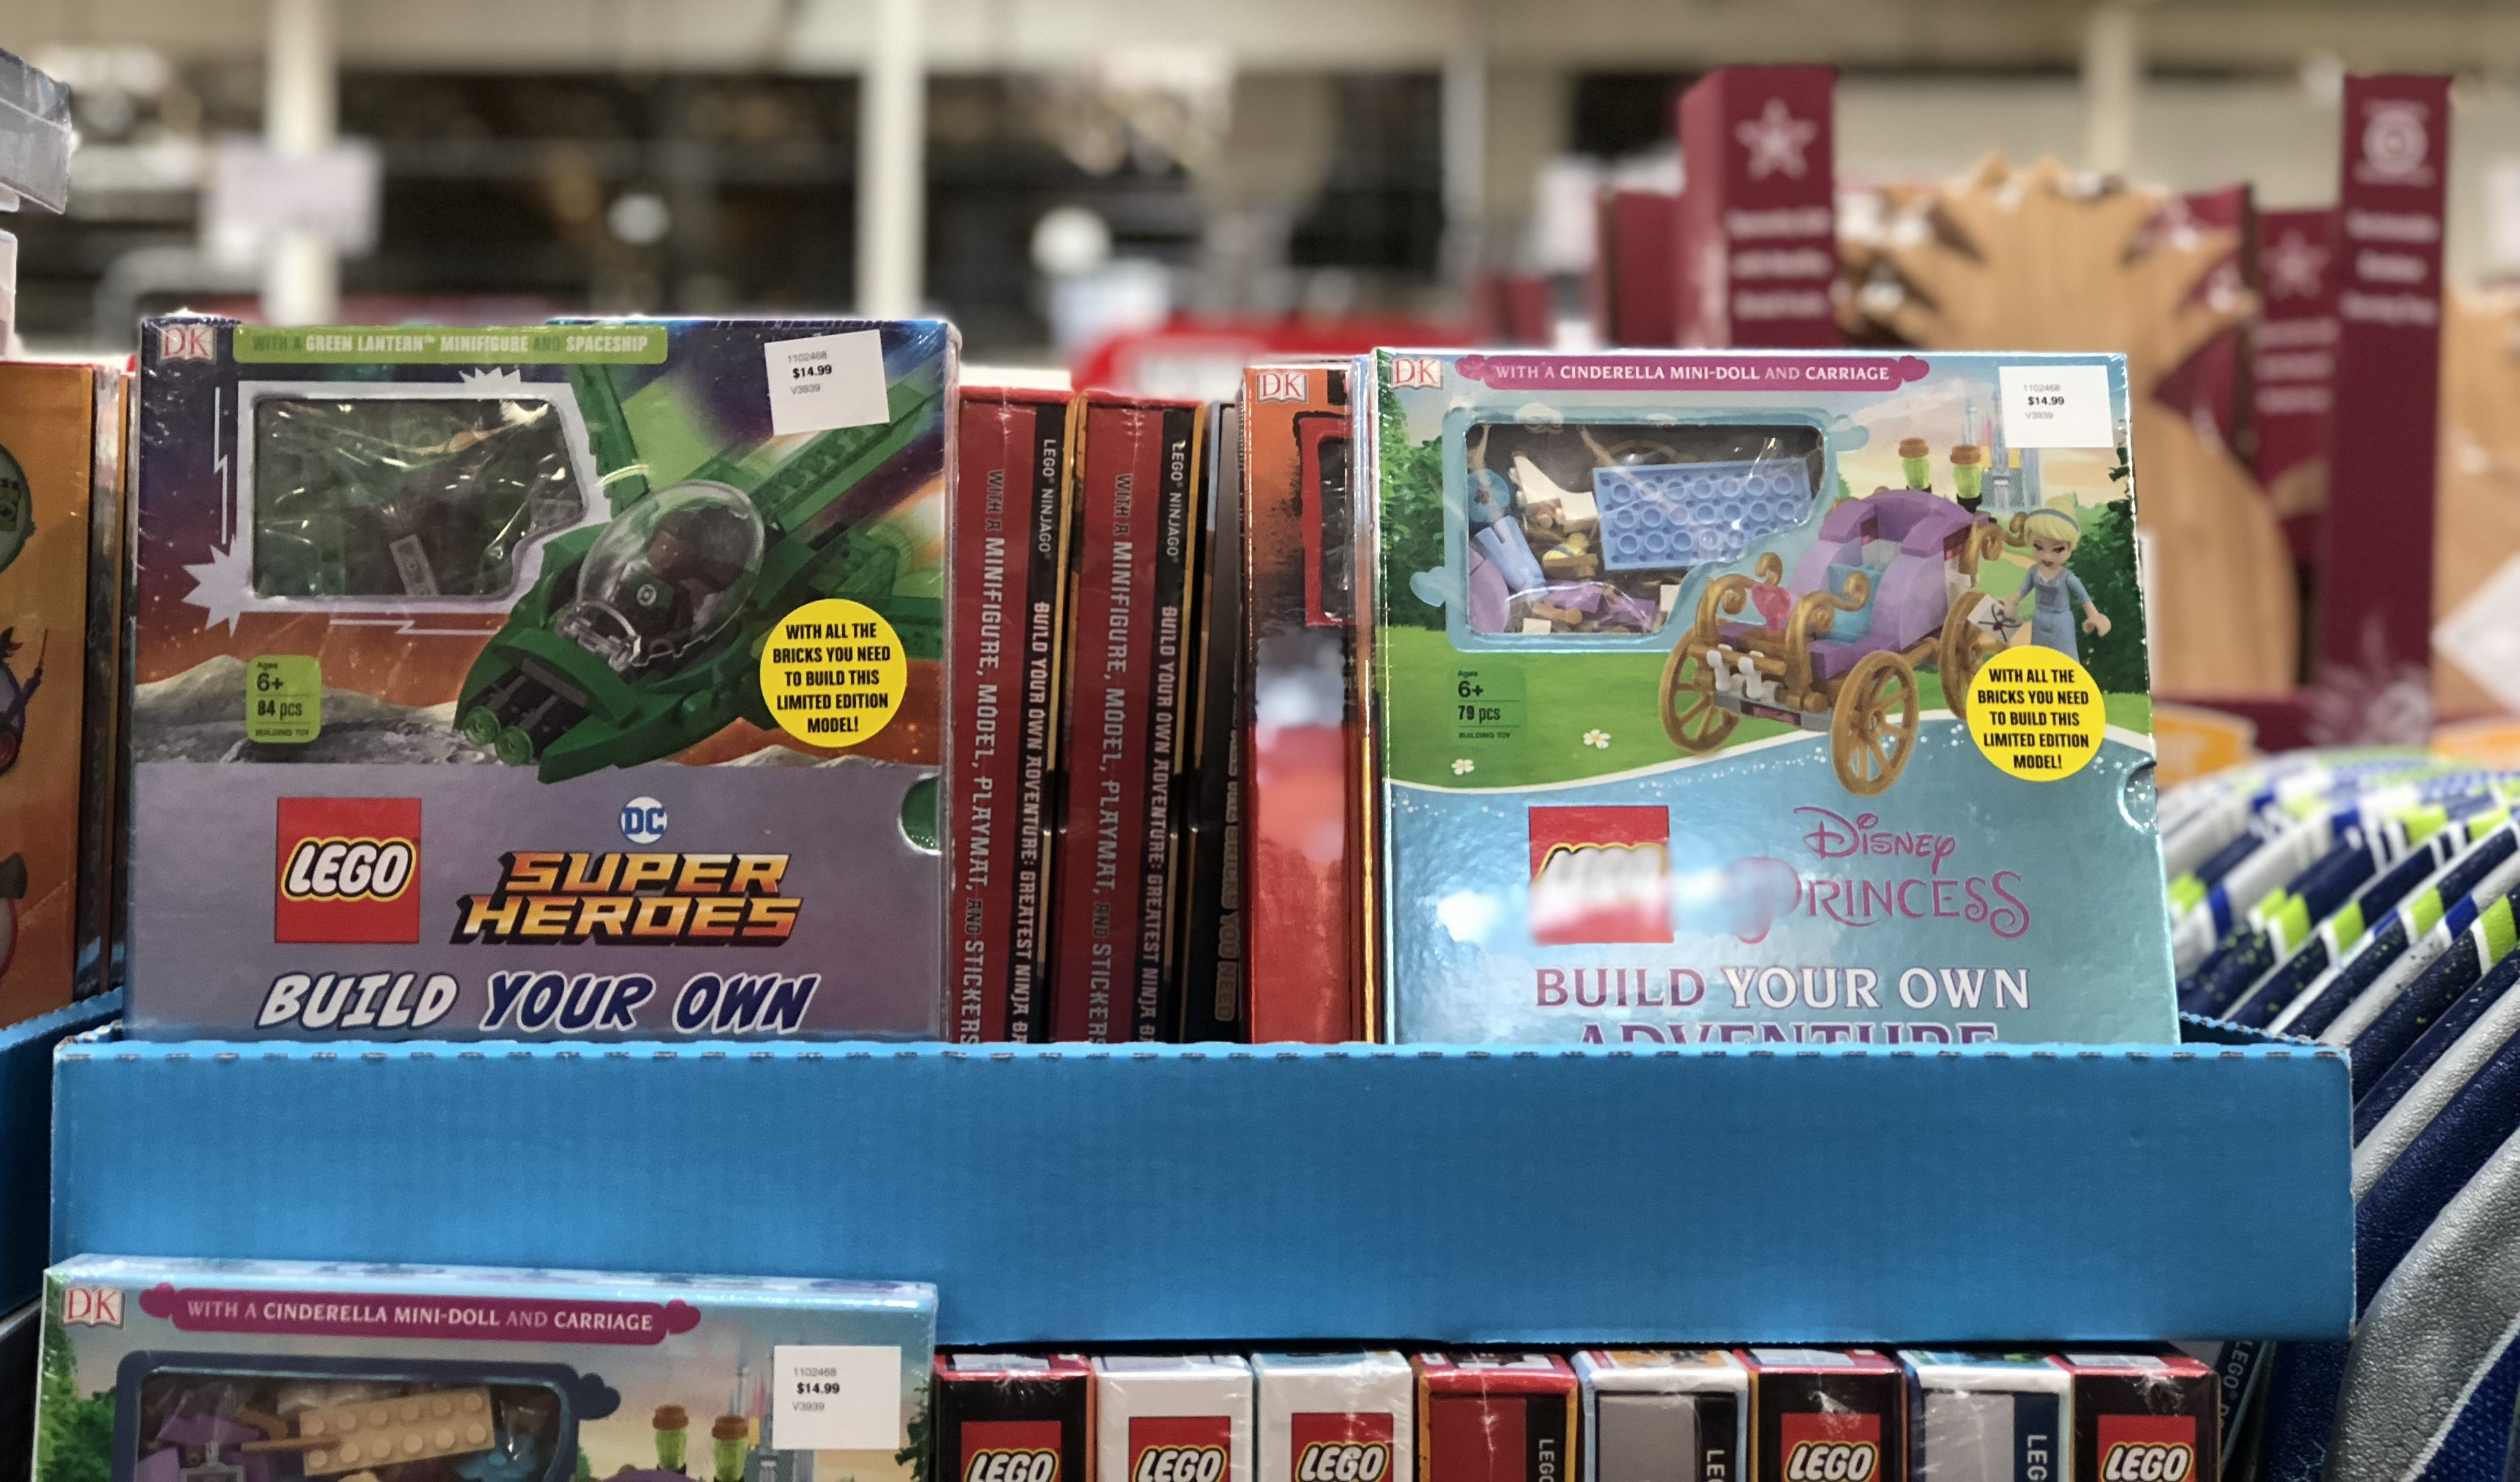 The best holiday toy deals for 2018 include the LEGO Build Your Own set at Costco